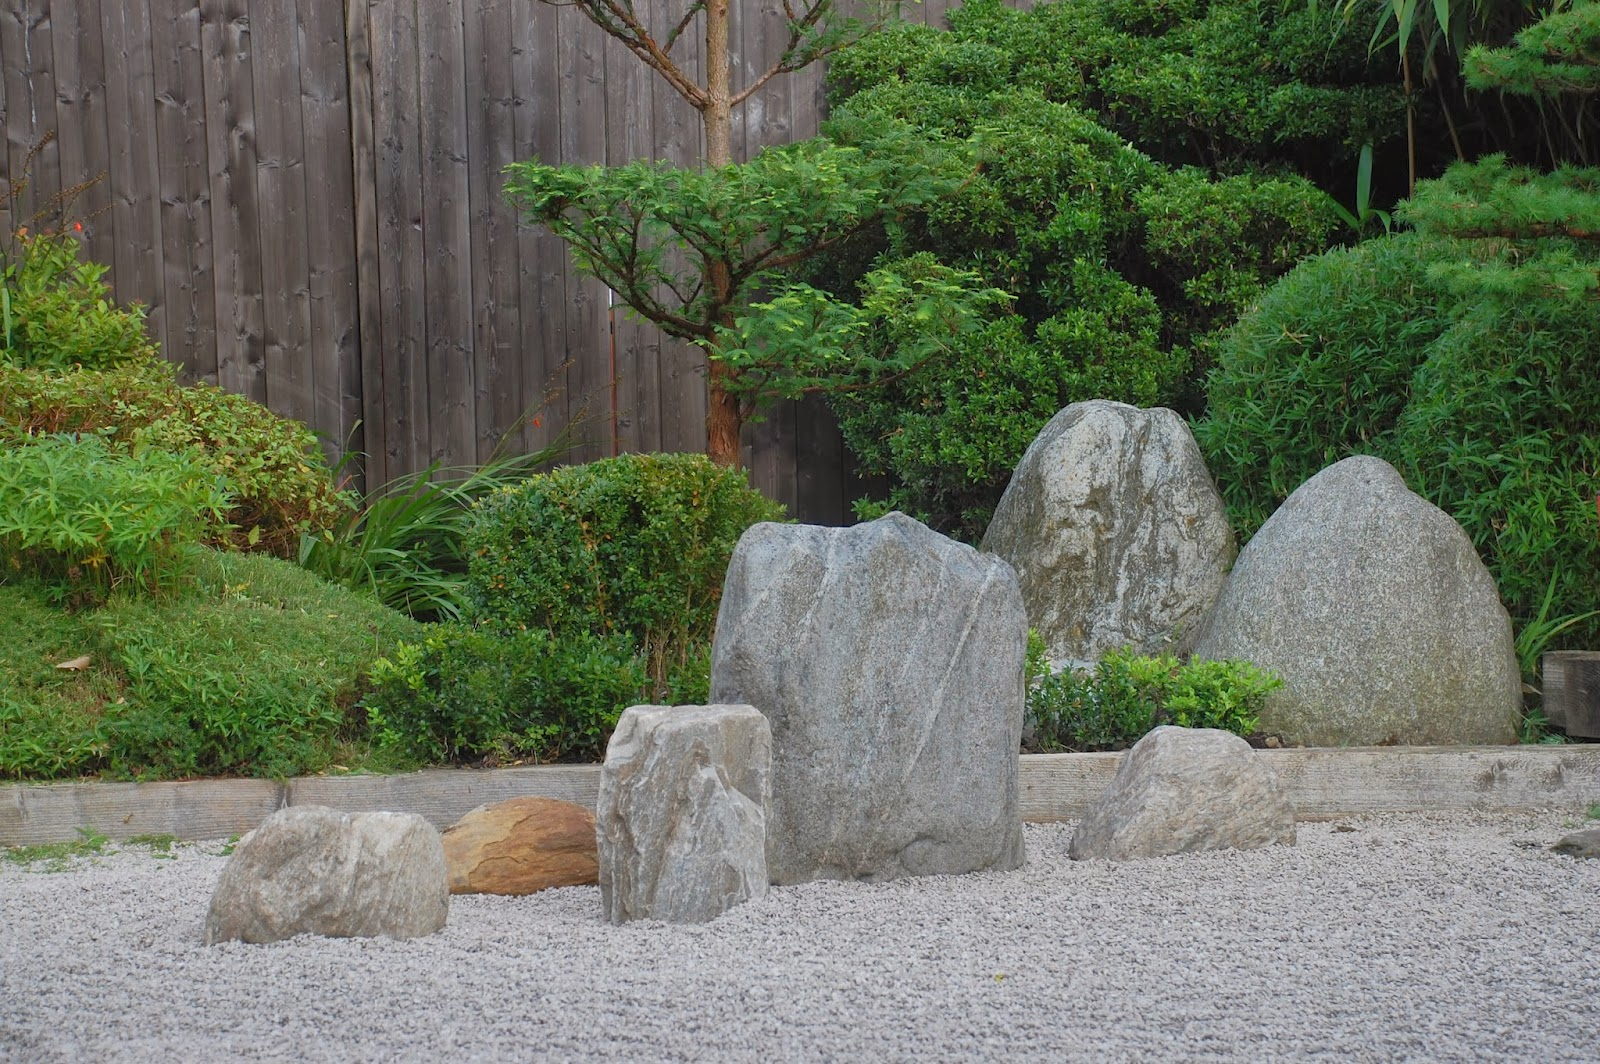 Japanese Garden Stones Robert ketchells blog arranging stones in a japanese style garden arranging stones in a japanese style garden workwithnaturefo